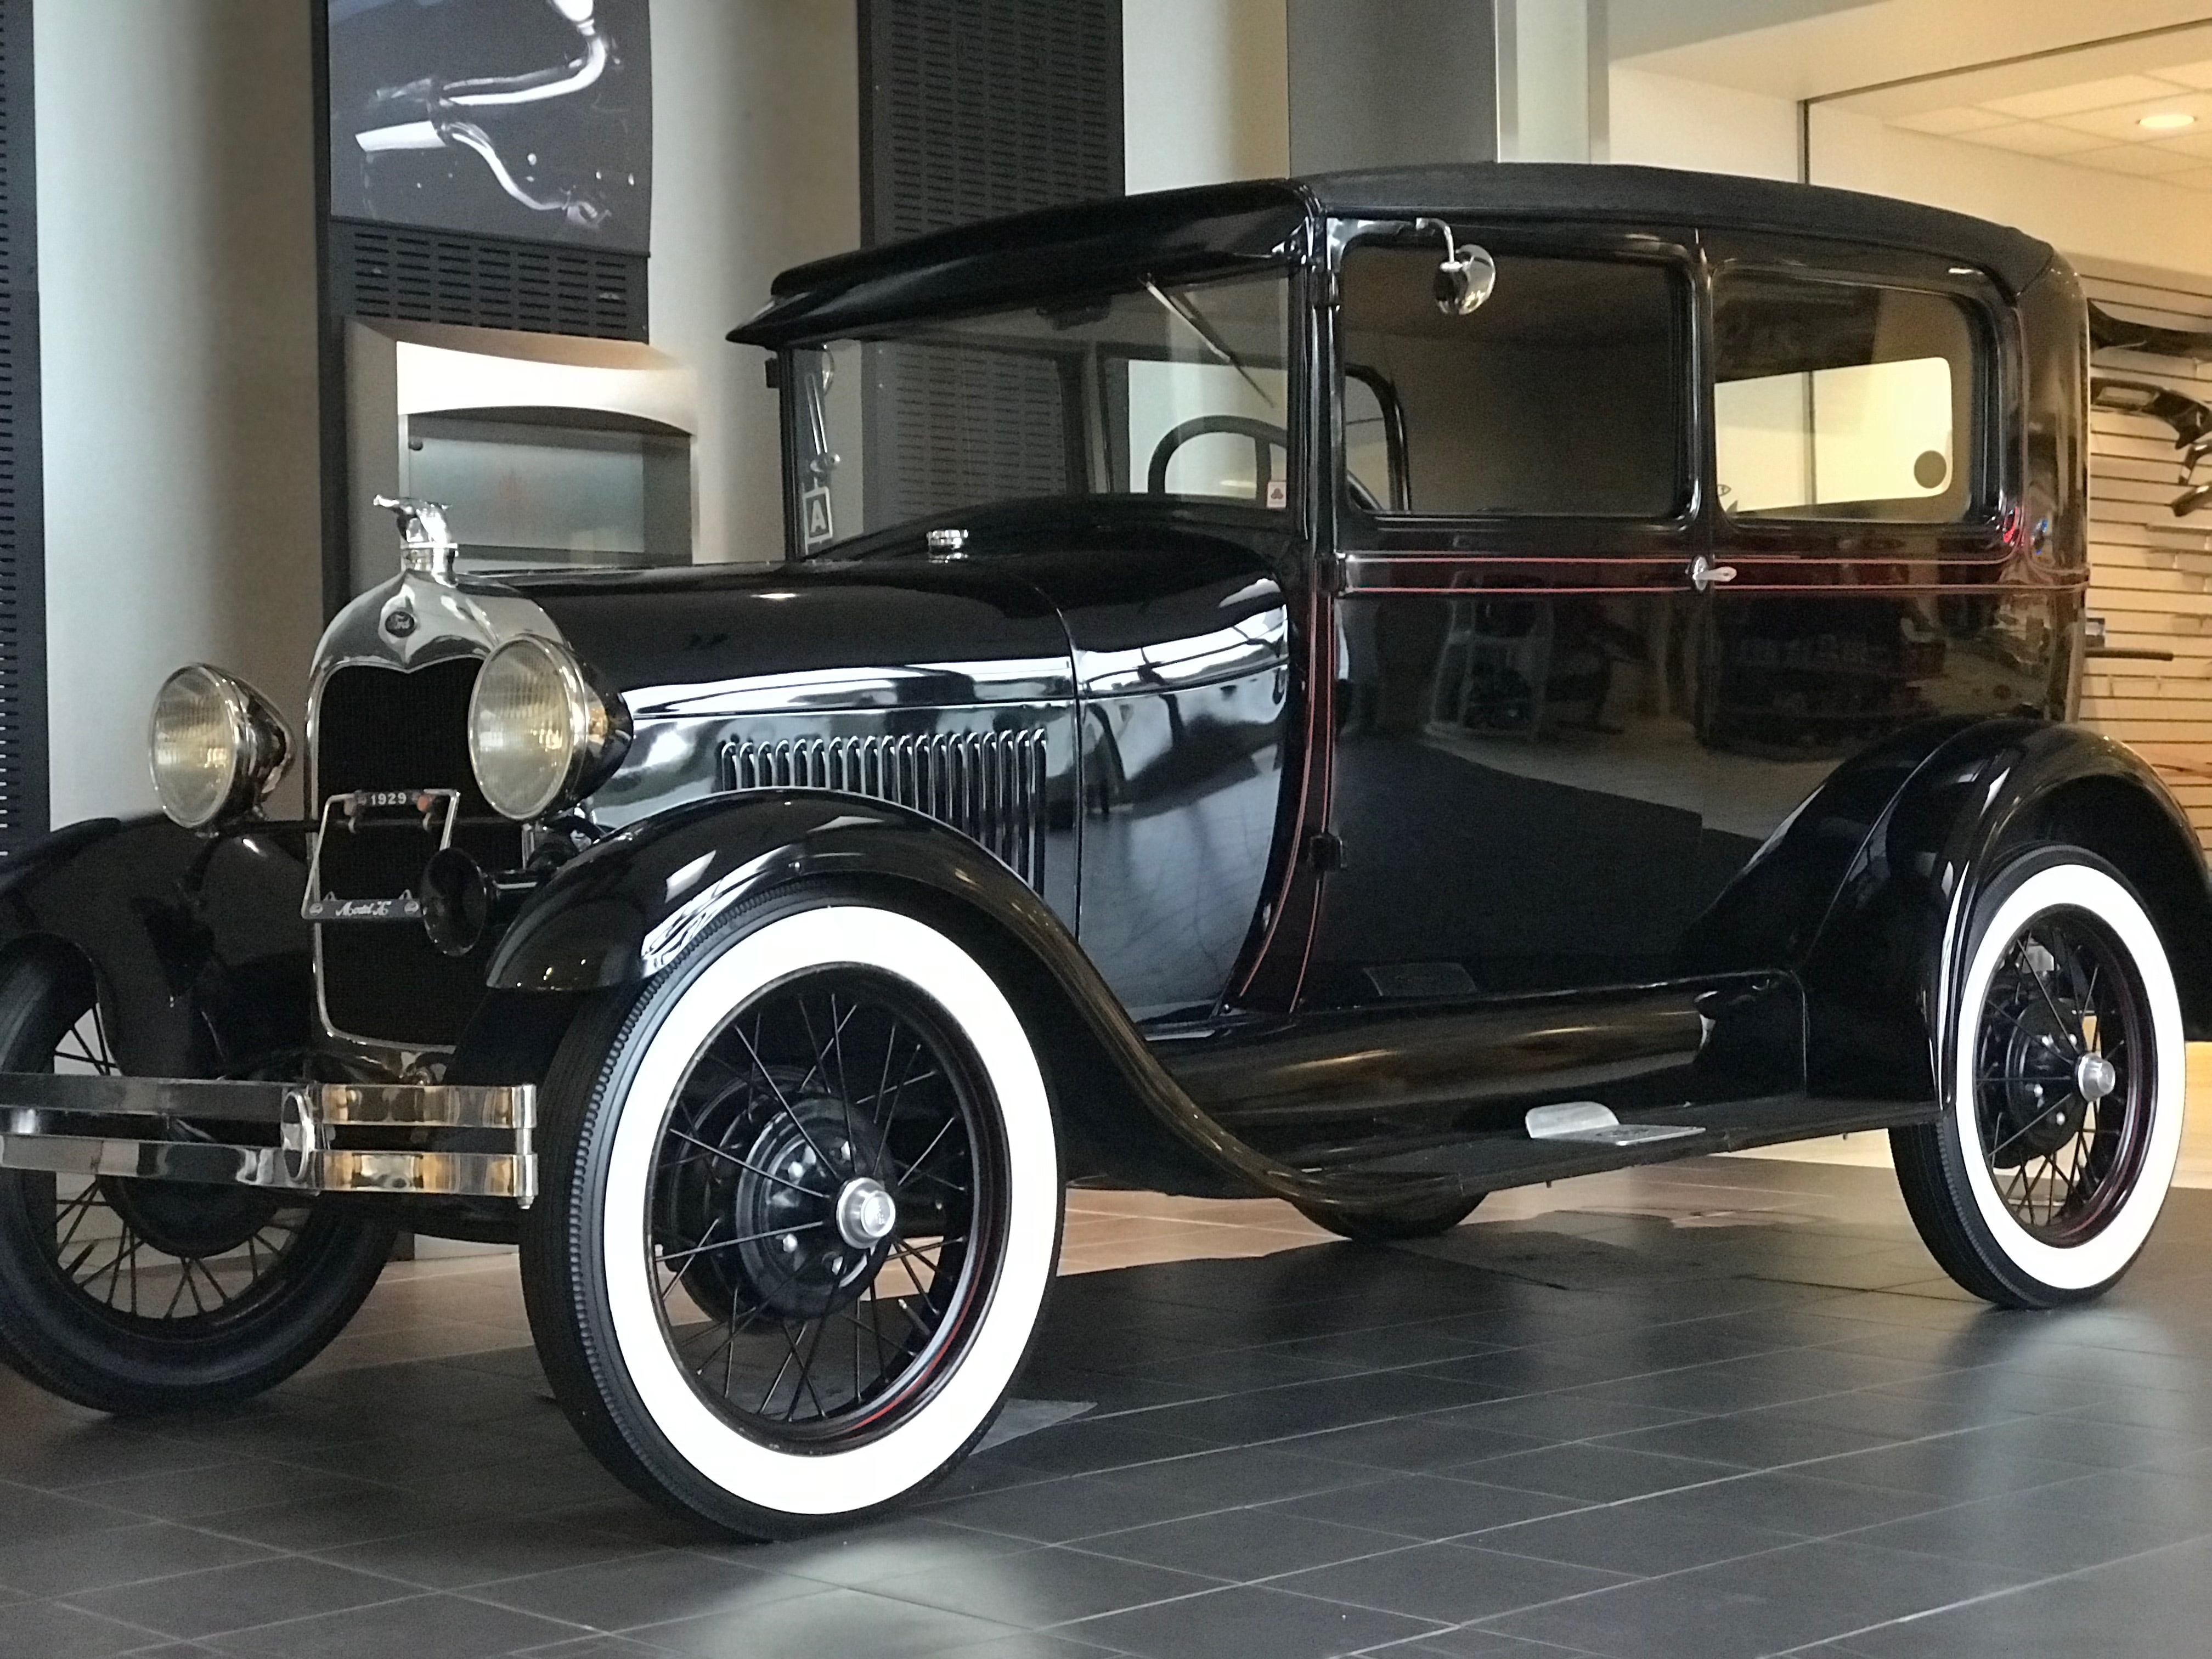 Used 1929 Ford Model A For Sale At Marshall Auto Group Vin Rhmarshallautogroup: Vin Number Location On 1929 Model A At Gmaili.net